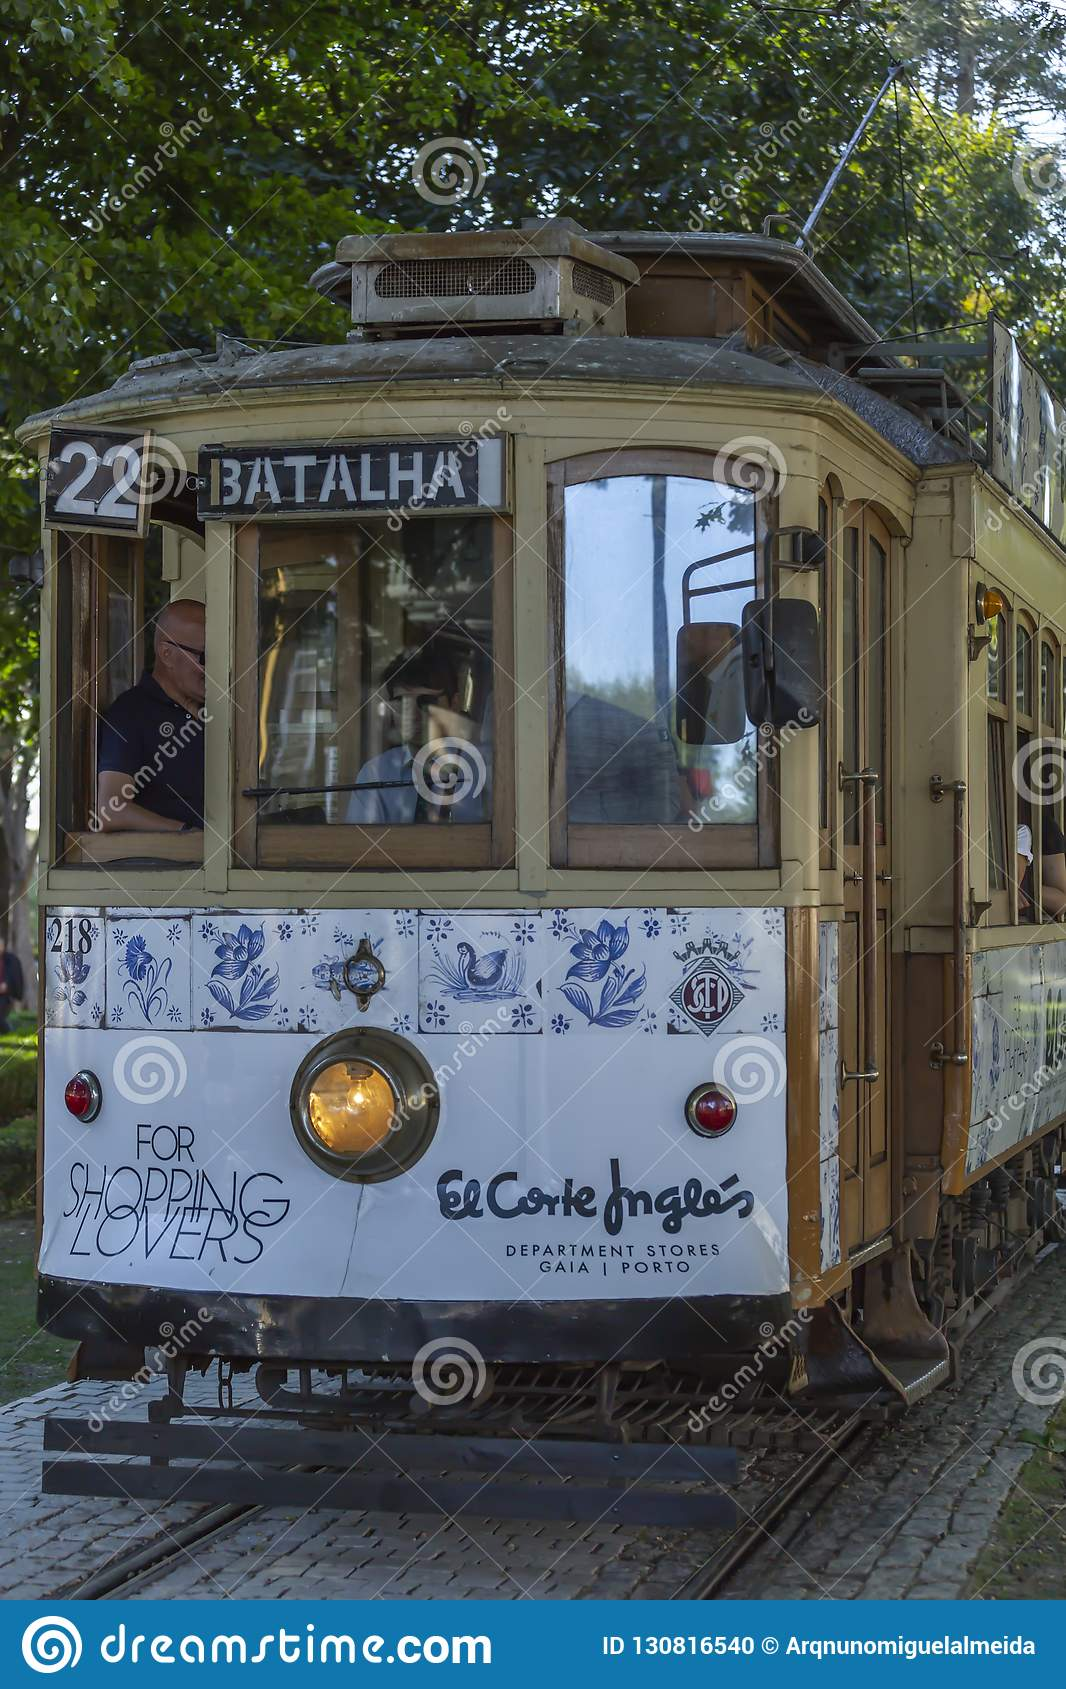 Front view of typical traditional trolley car, Oporto